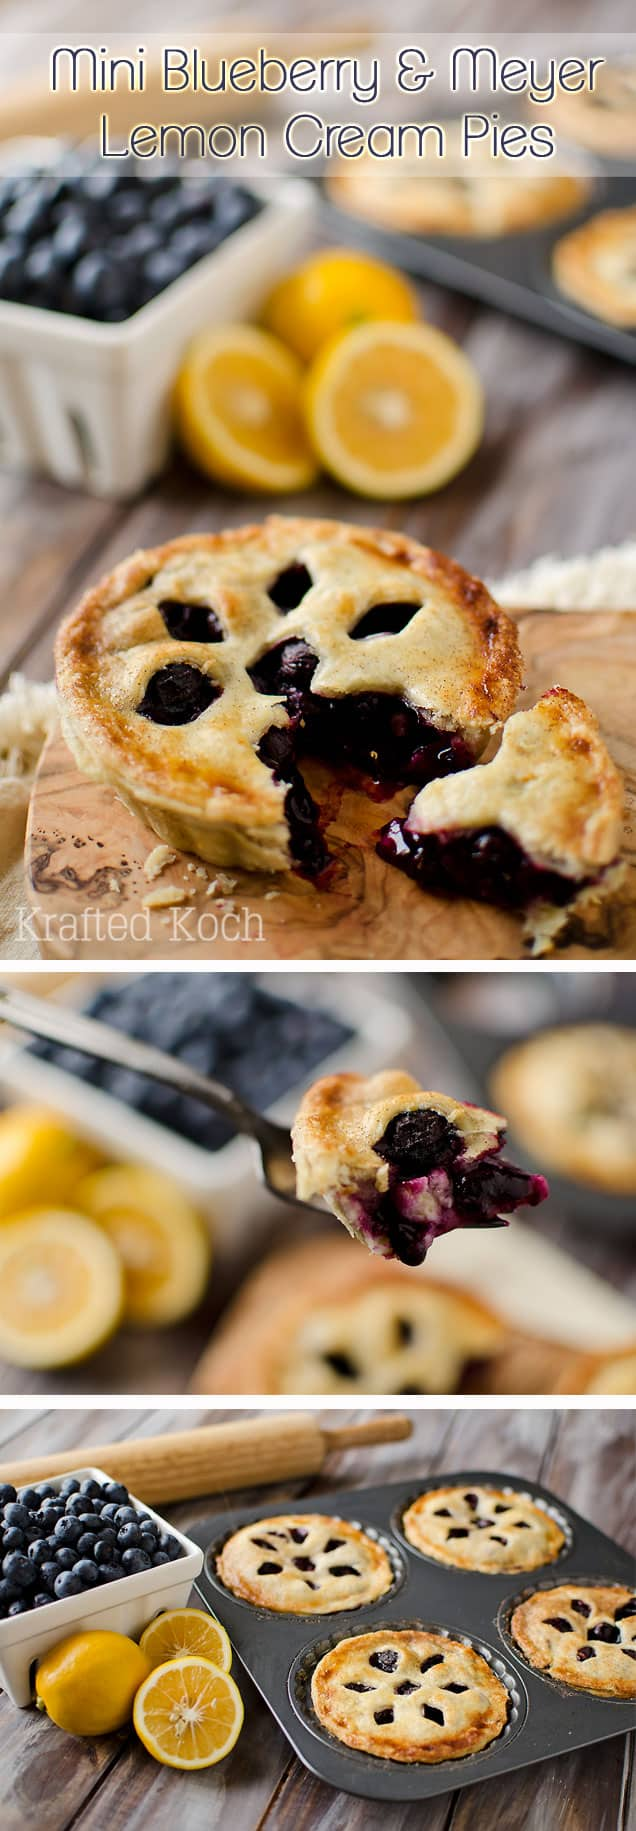 Mini Blueberry & Meyer Lemon Cream Pies - Krafted Koch - The perfect ...